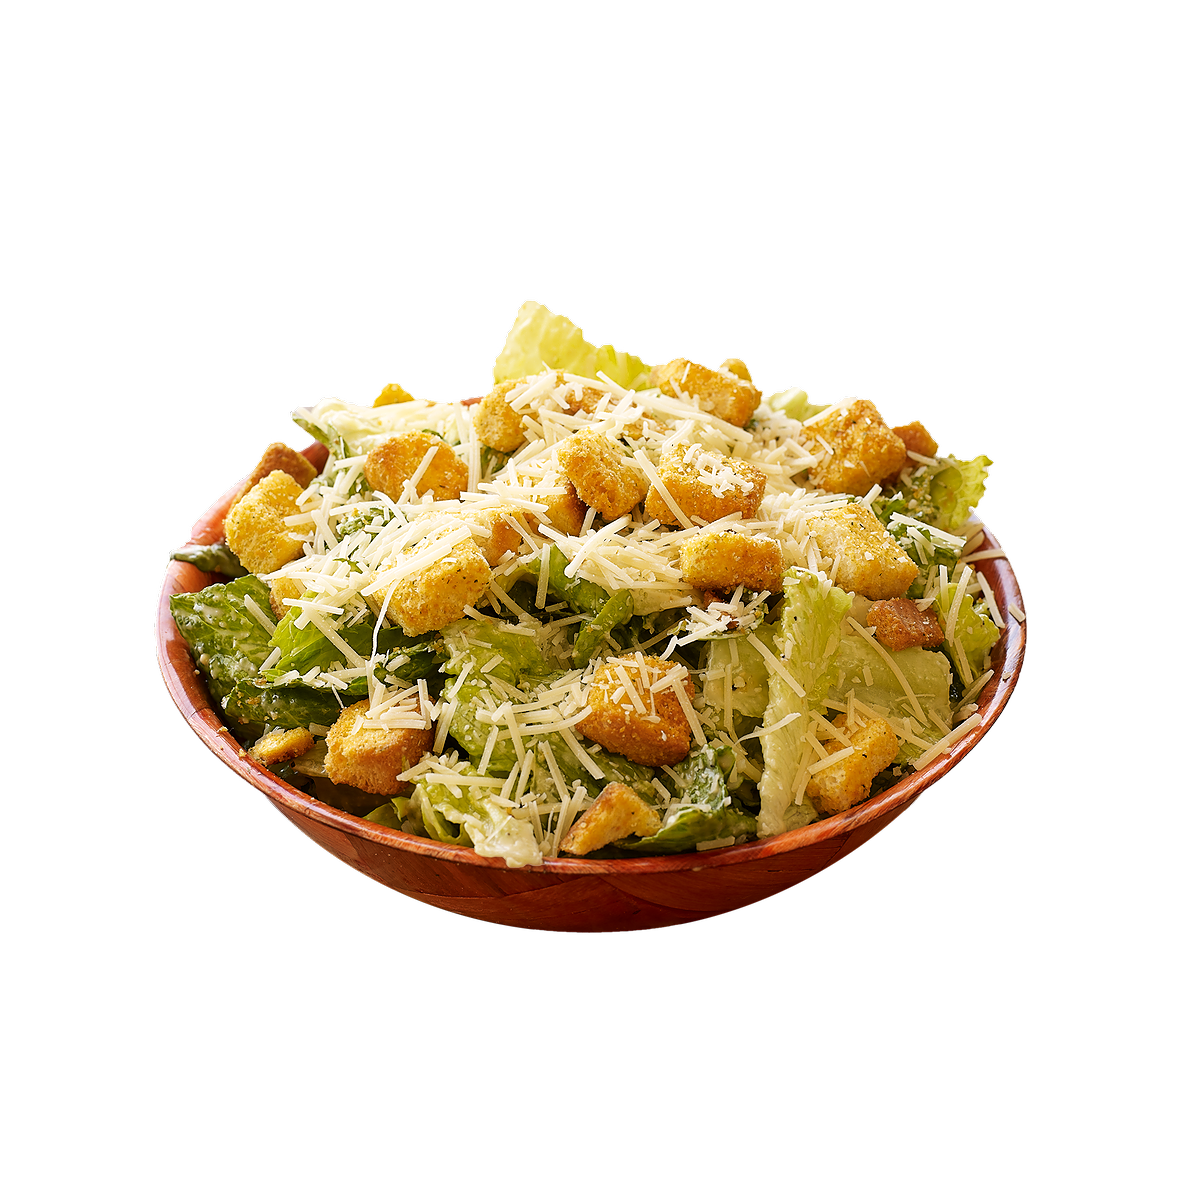 Not feeling a whole pie today? Want to start with something else? Choose from a great selection of salads, sure to fulfill your cravings.